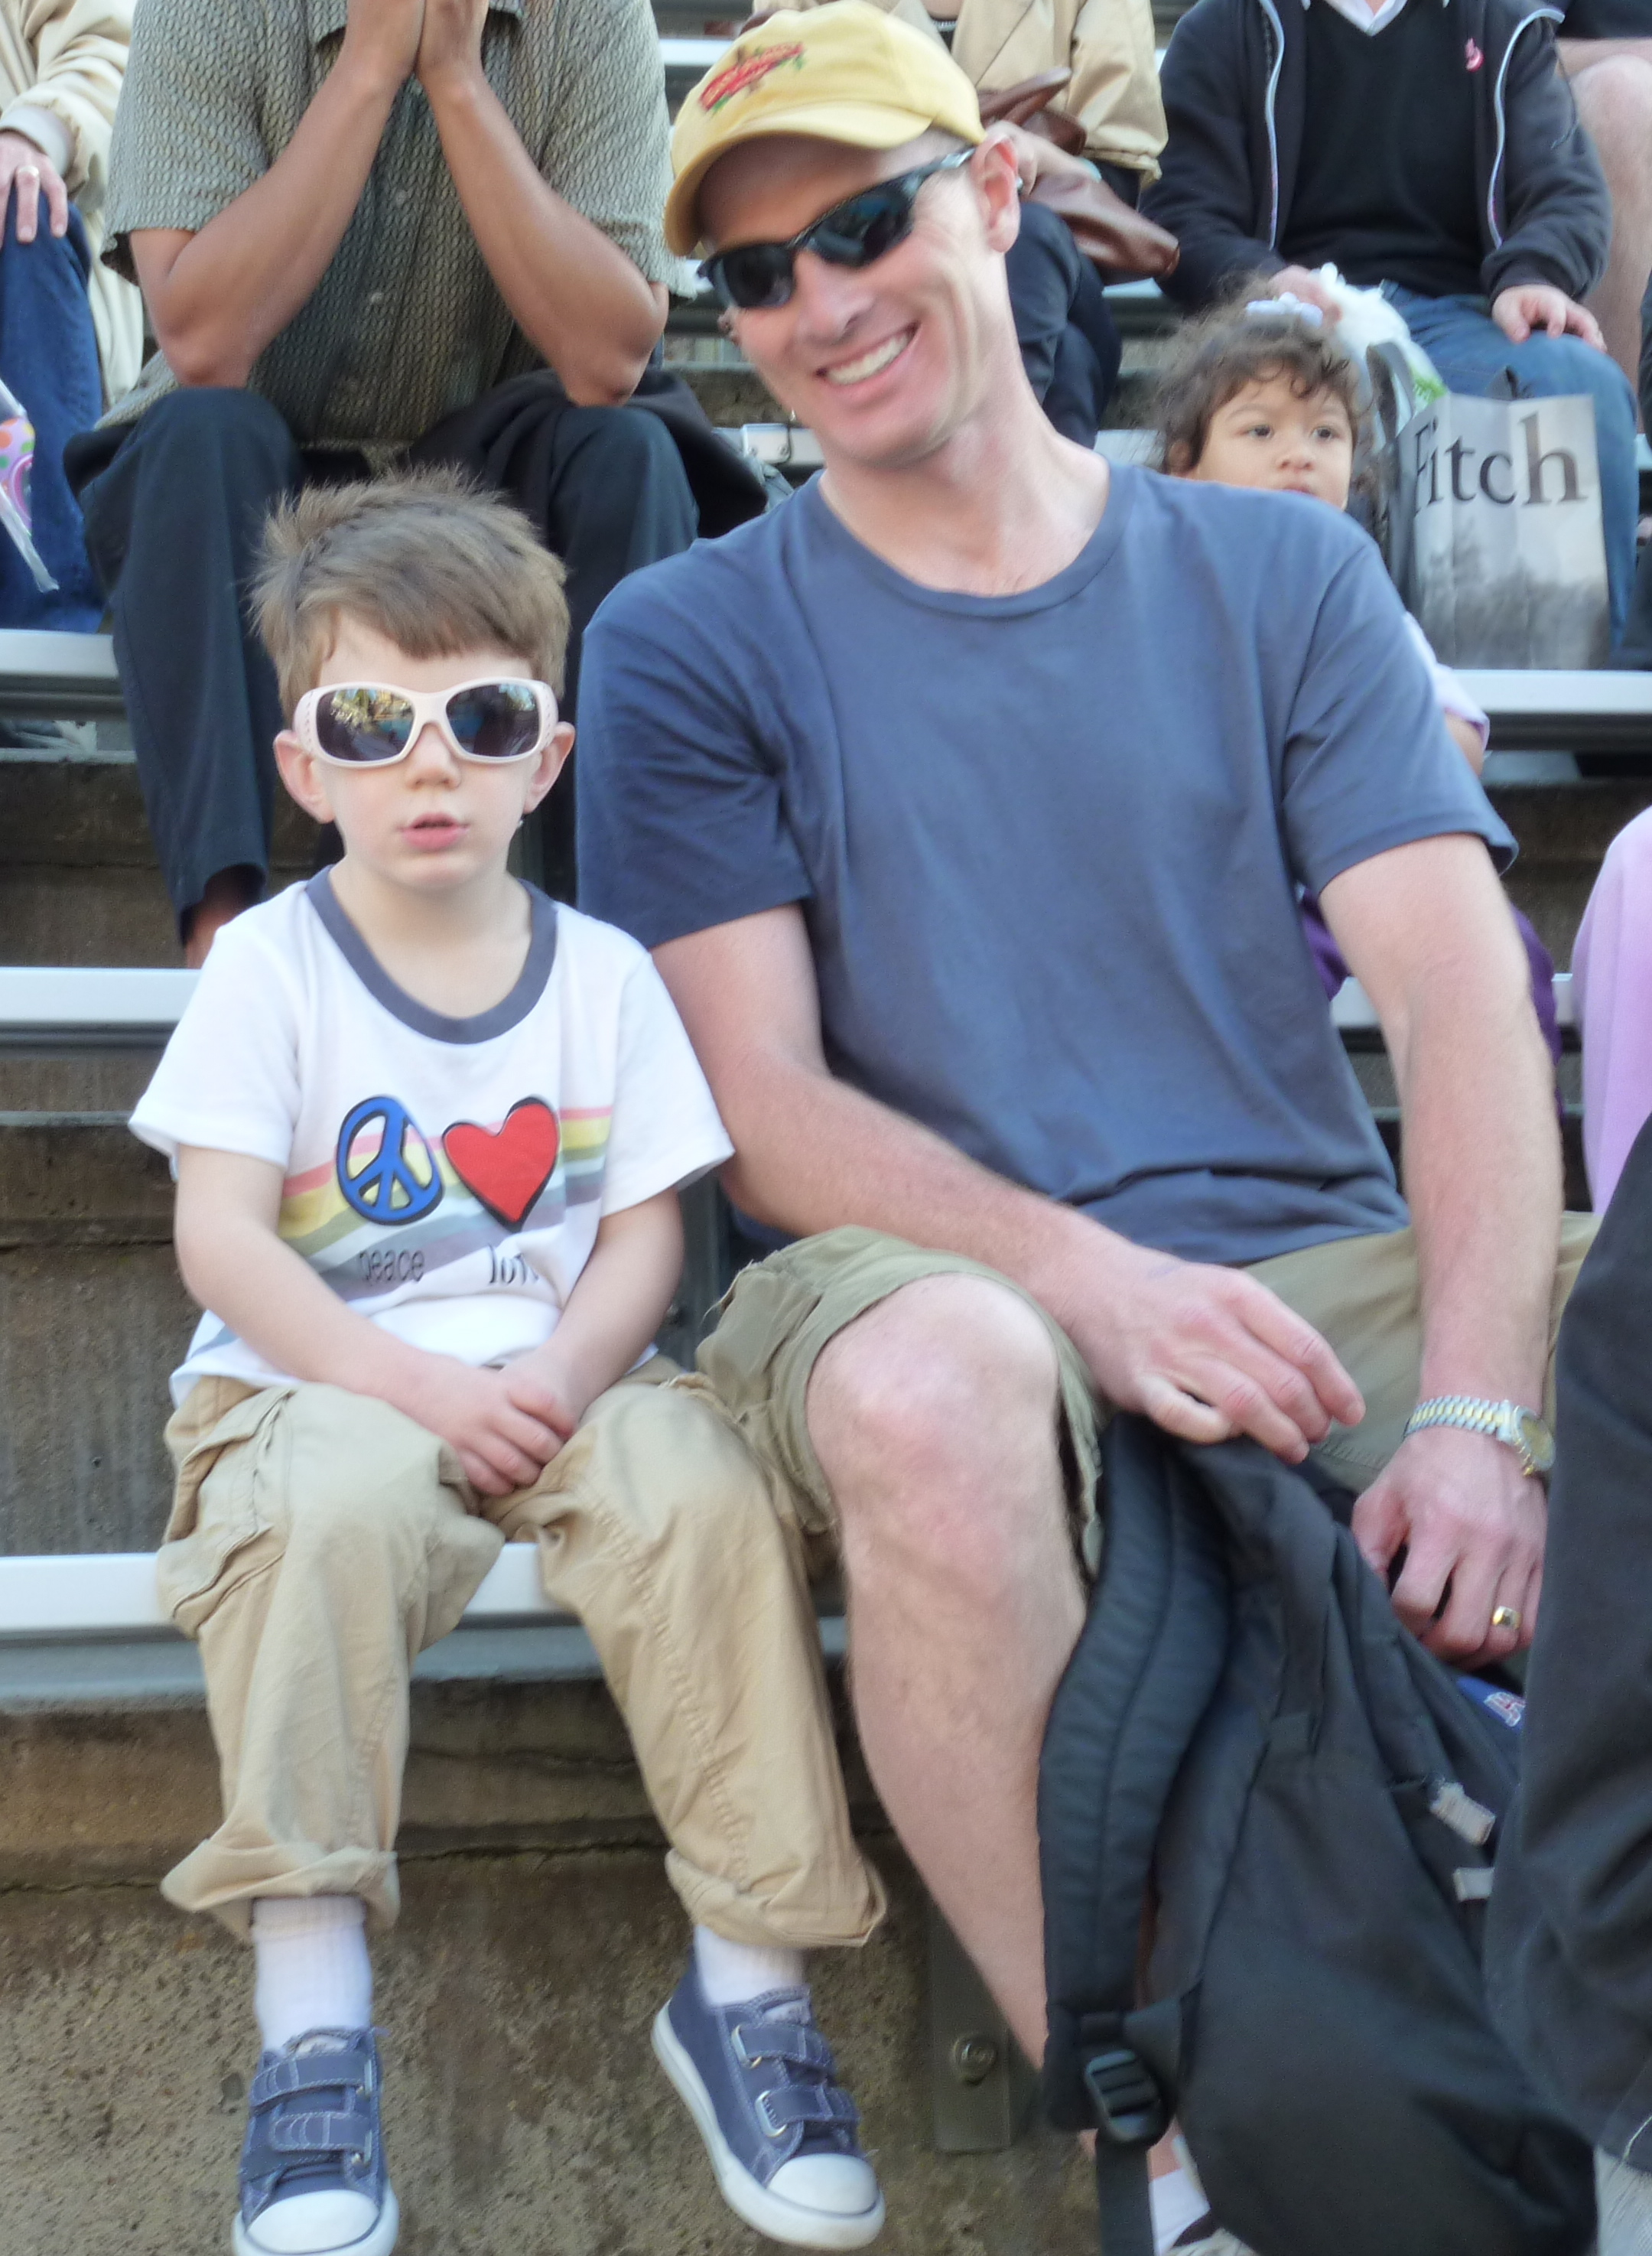 Chris and the 4YO at SeaWorld - Fancy Glasses